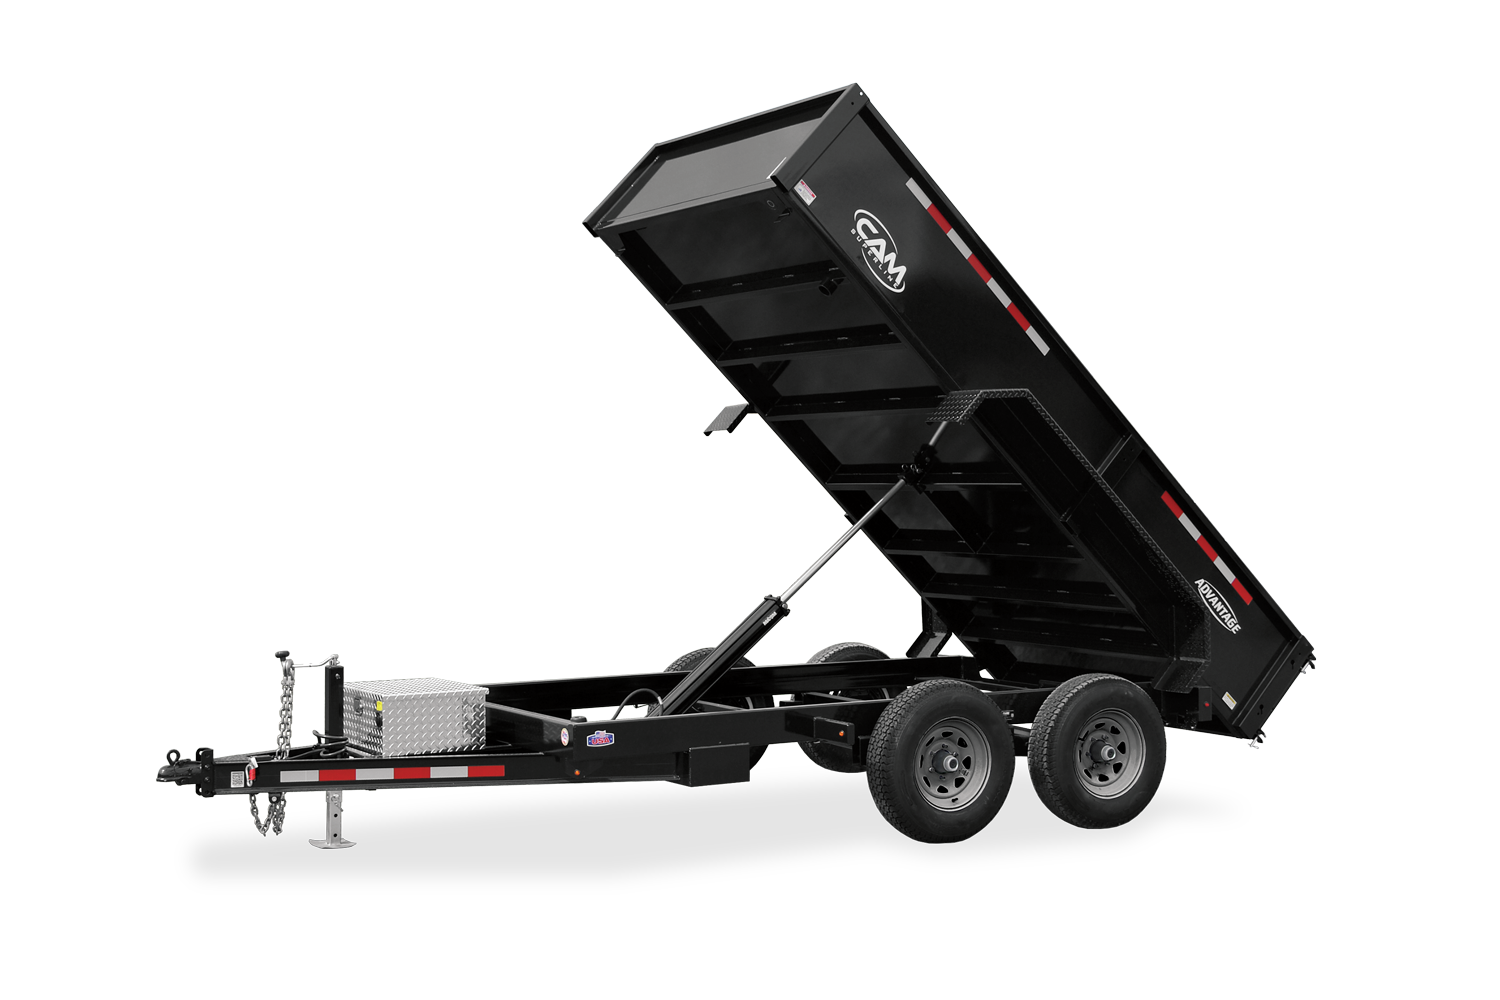 2021 Cam Superline 5 Ton Advantage Low Profile Dump Trailer